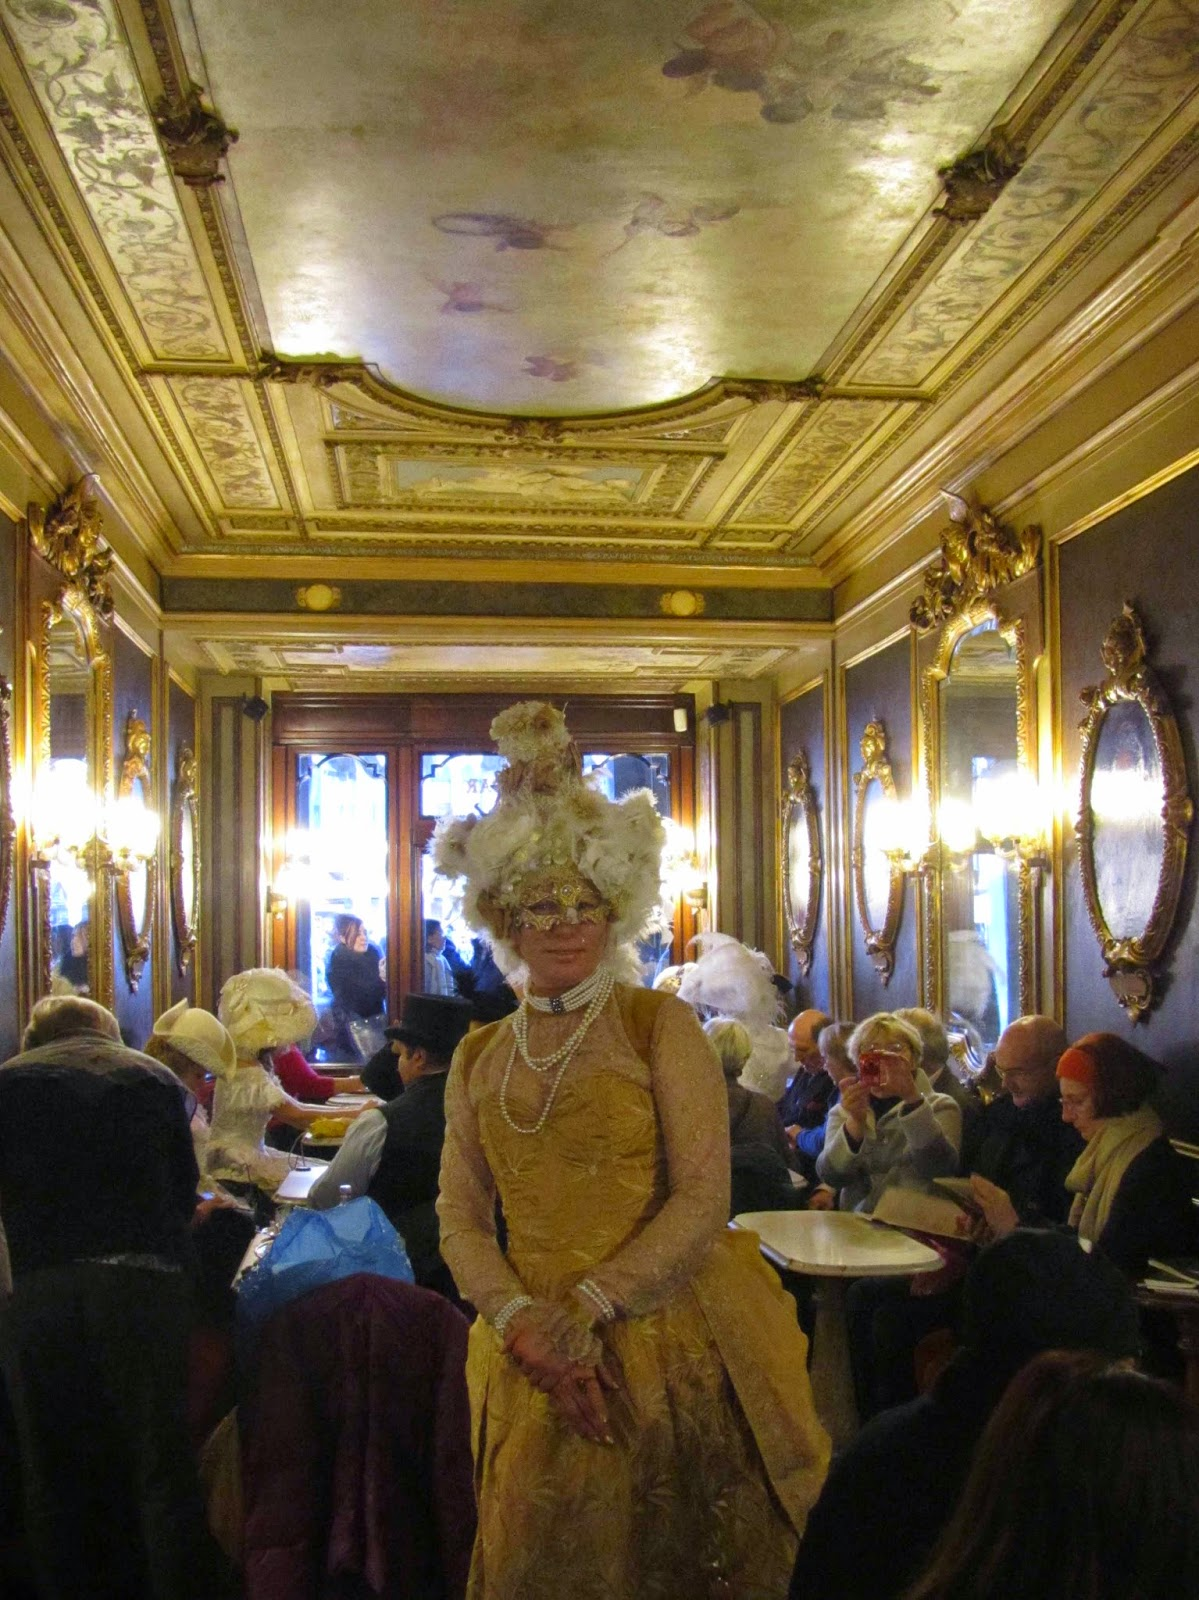 dressed as a golden angel in Cafè Florian